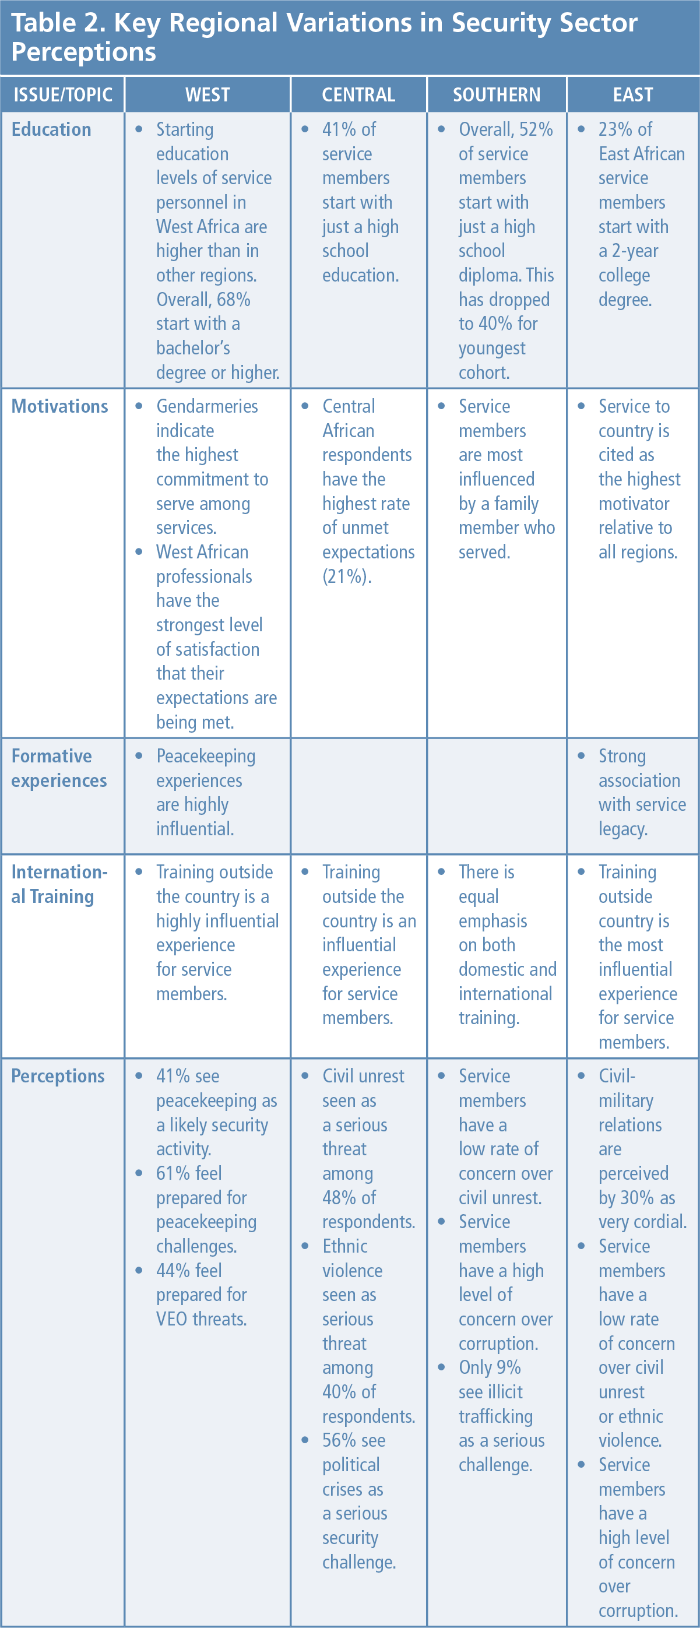 Table 2. Key Regional Variations in Security Sector Perceptions